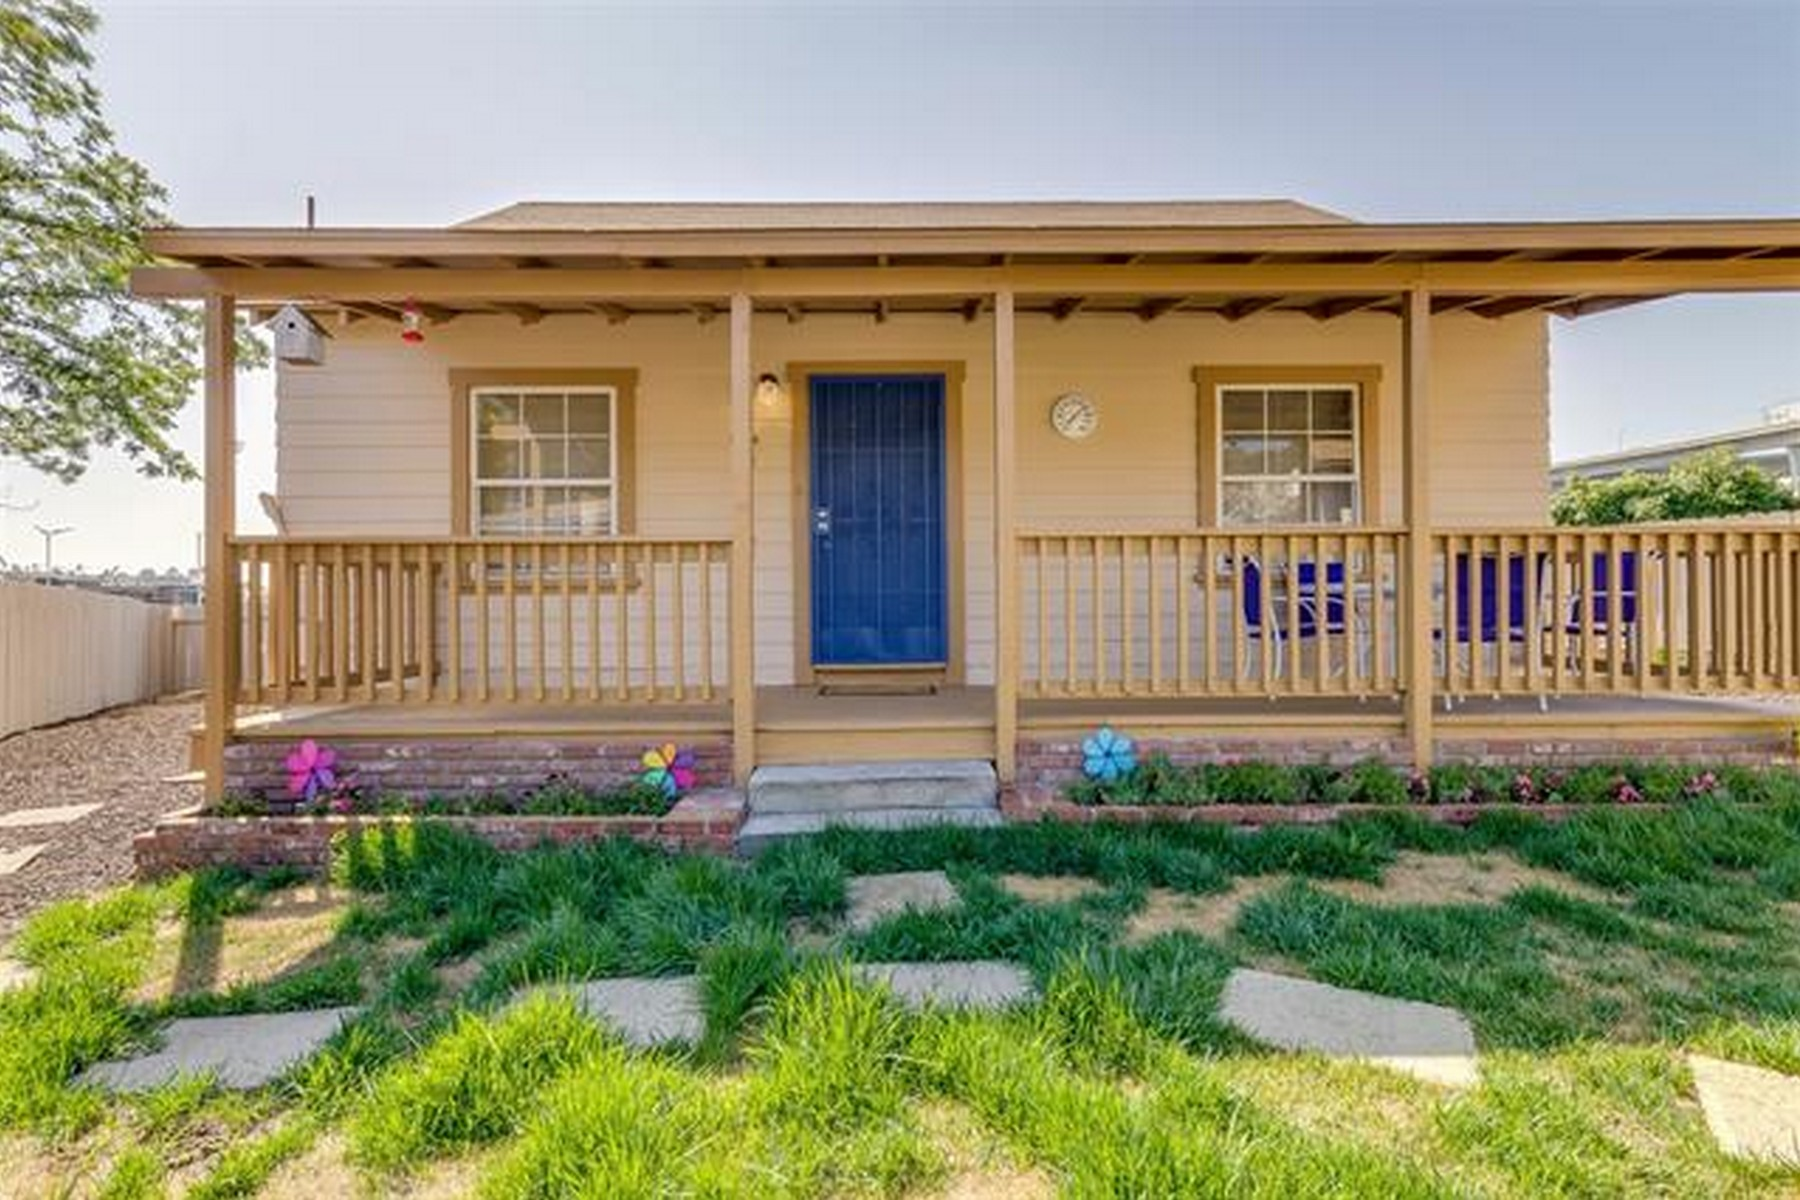 Single Family Home for Sale at 5264 Wood Street La Mesa, California 91941 United States